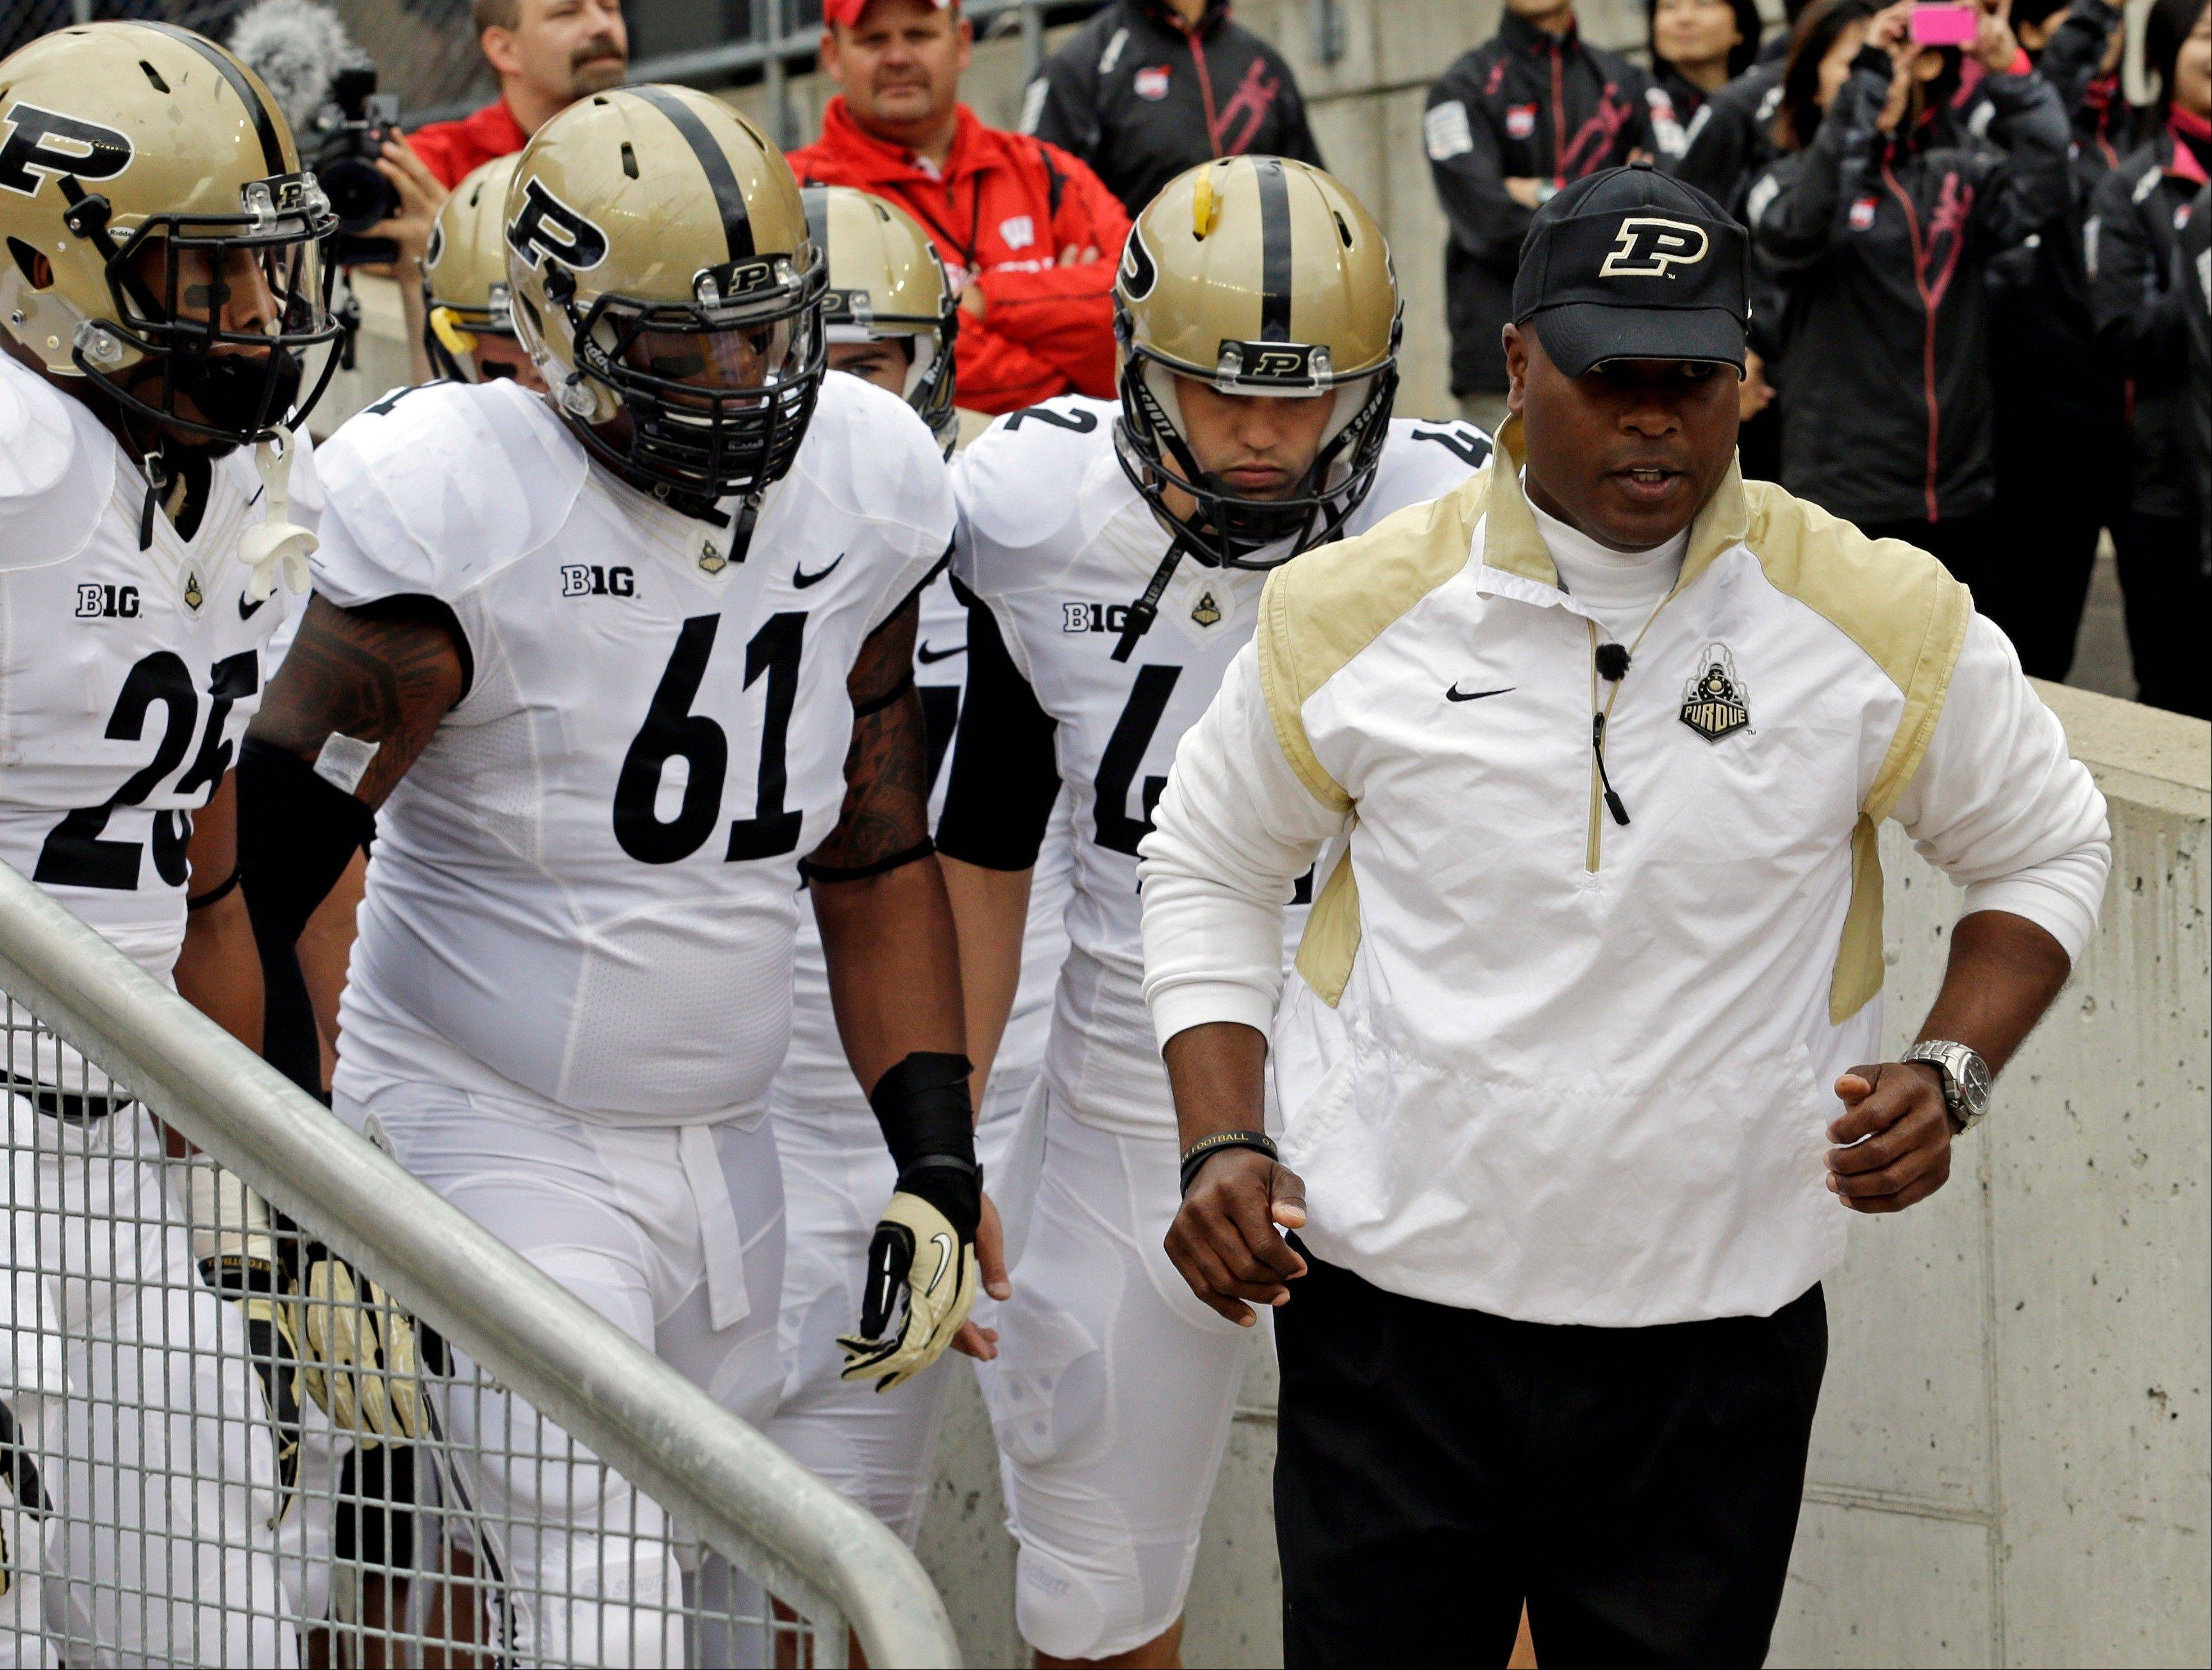 Purdue head coach Darrell Hazell and the Boilermakers will play Mid-American Conference favorite Northern Illinois on Saturday.